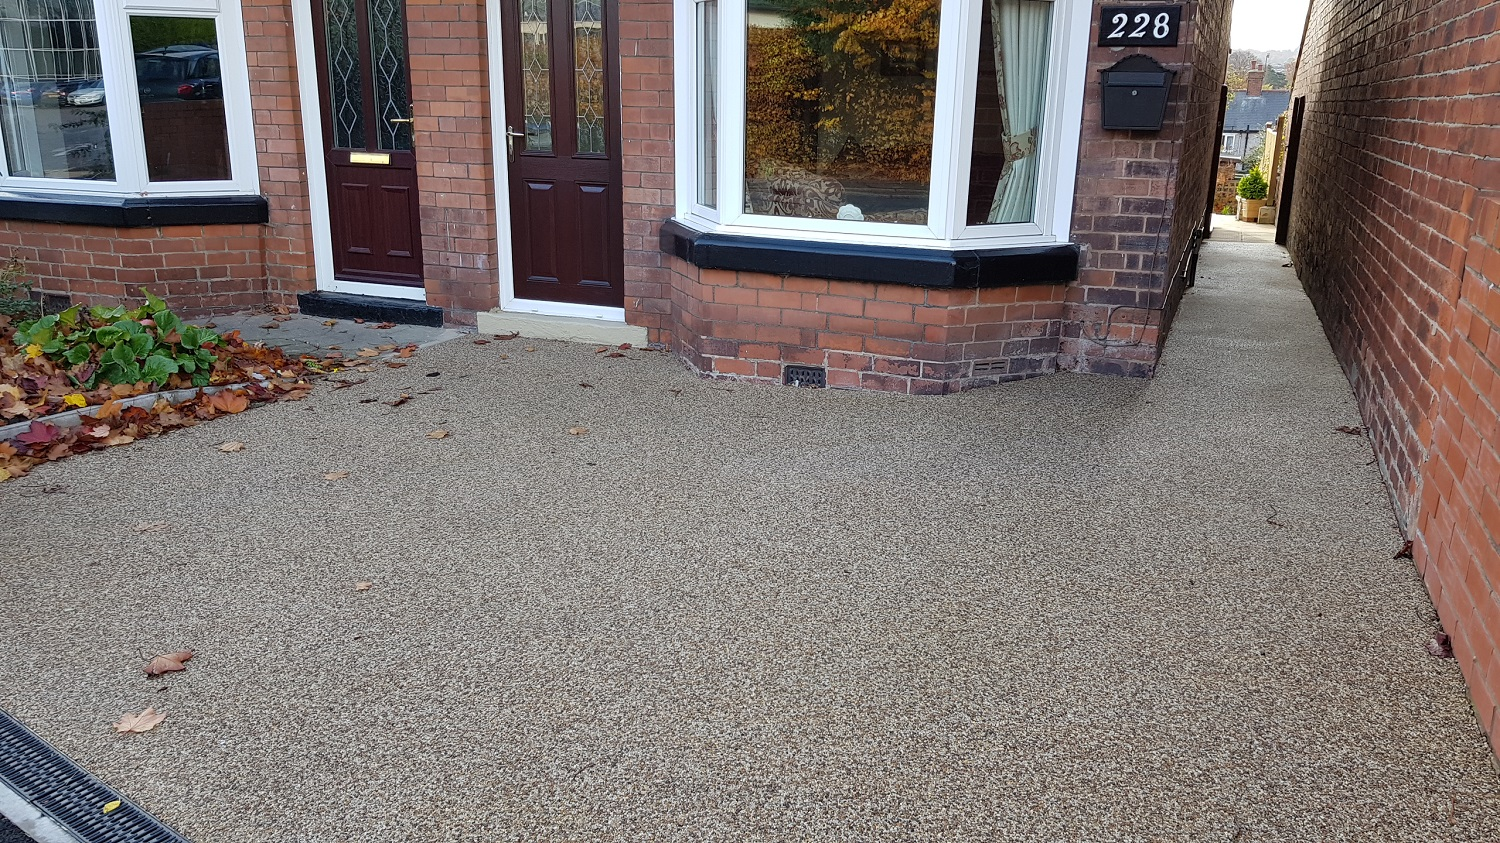 R3 - Milk Chocolate Mix Resin Bound Driveway Surfacing at Brampton in Chesterfield